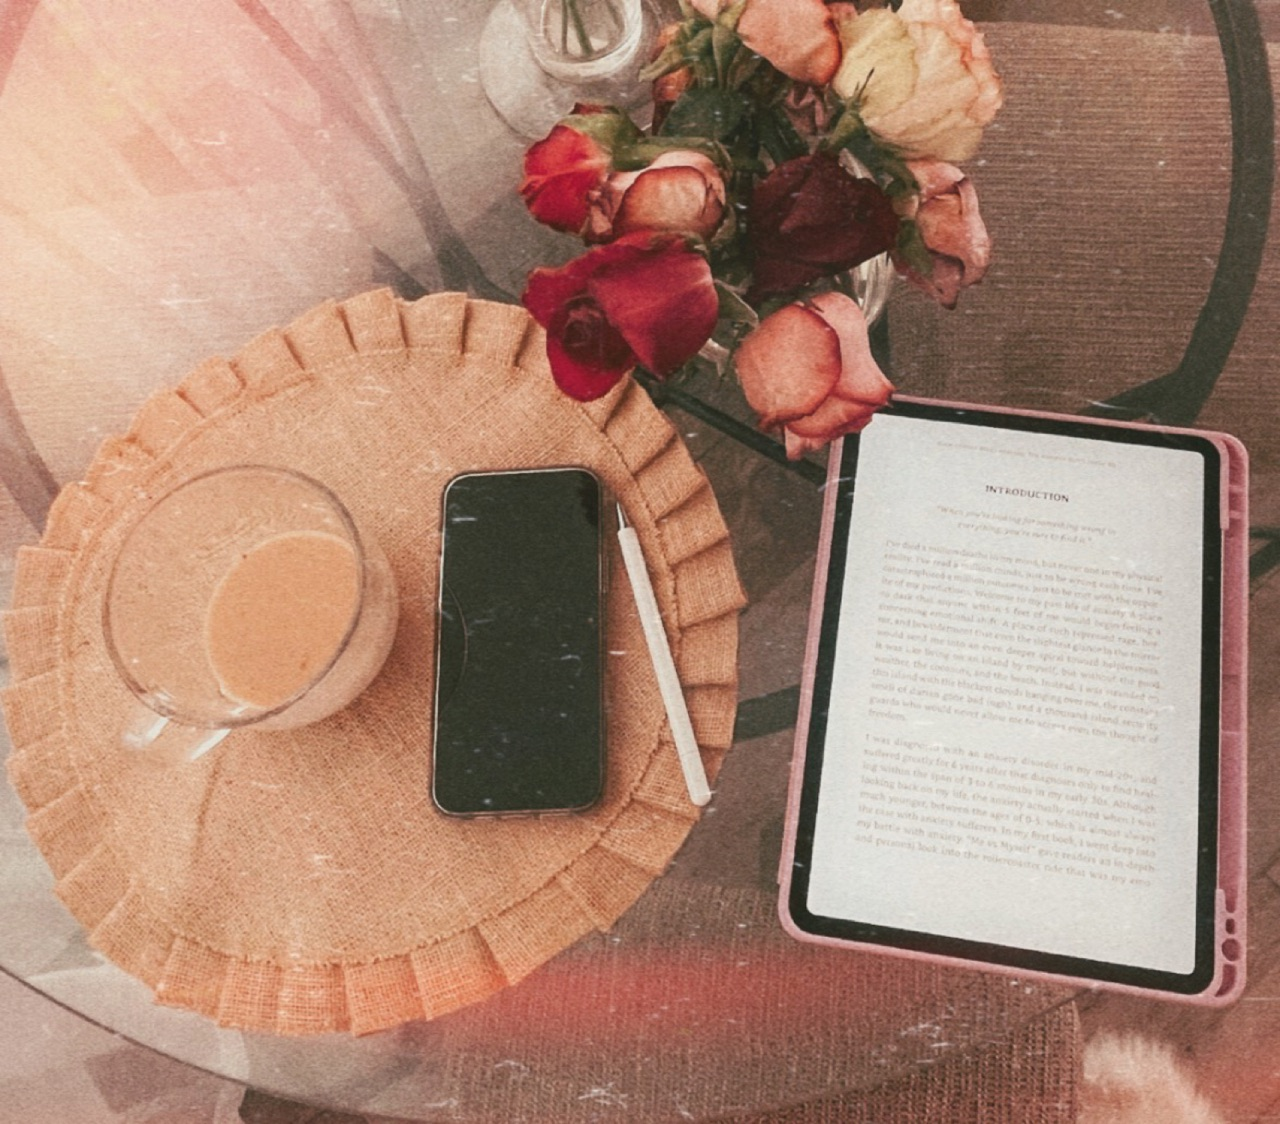 aesthetic, bliss, and books image